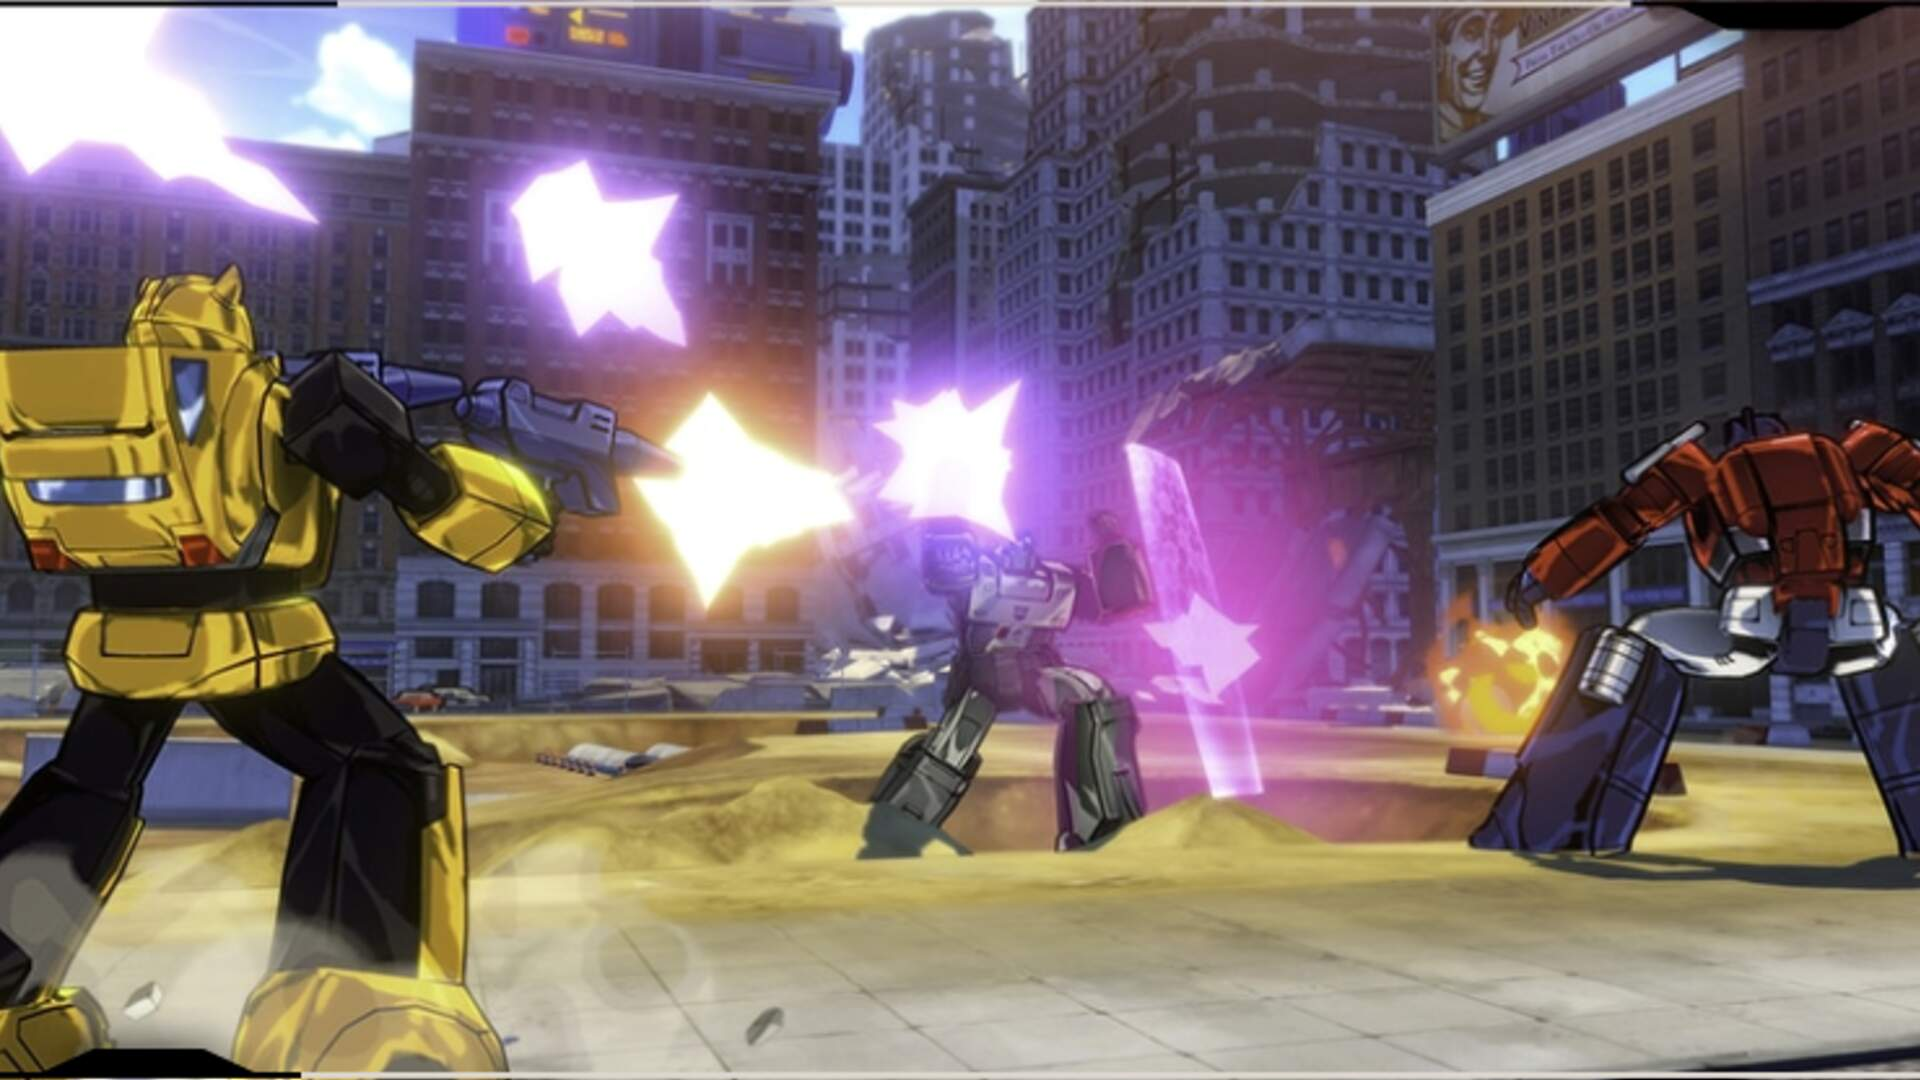 Guide to Making the Best Weapons in Transformers Devastation